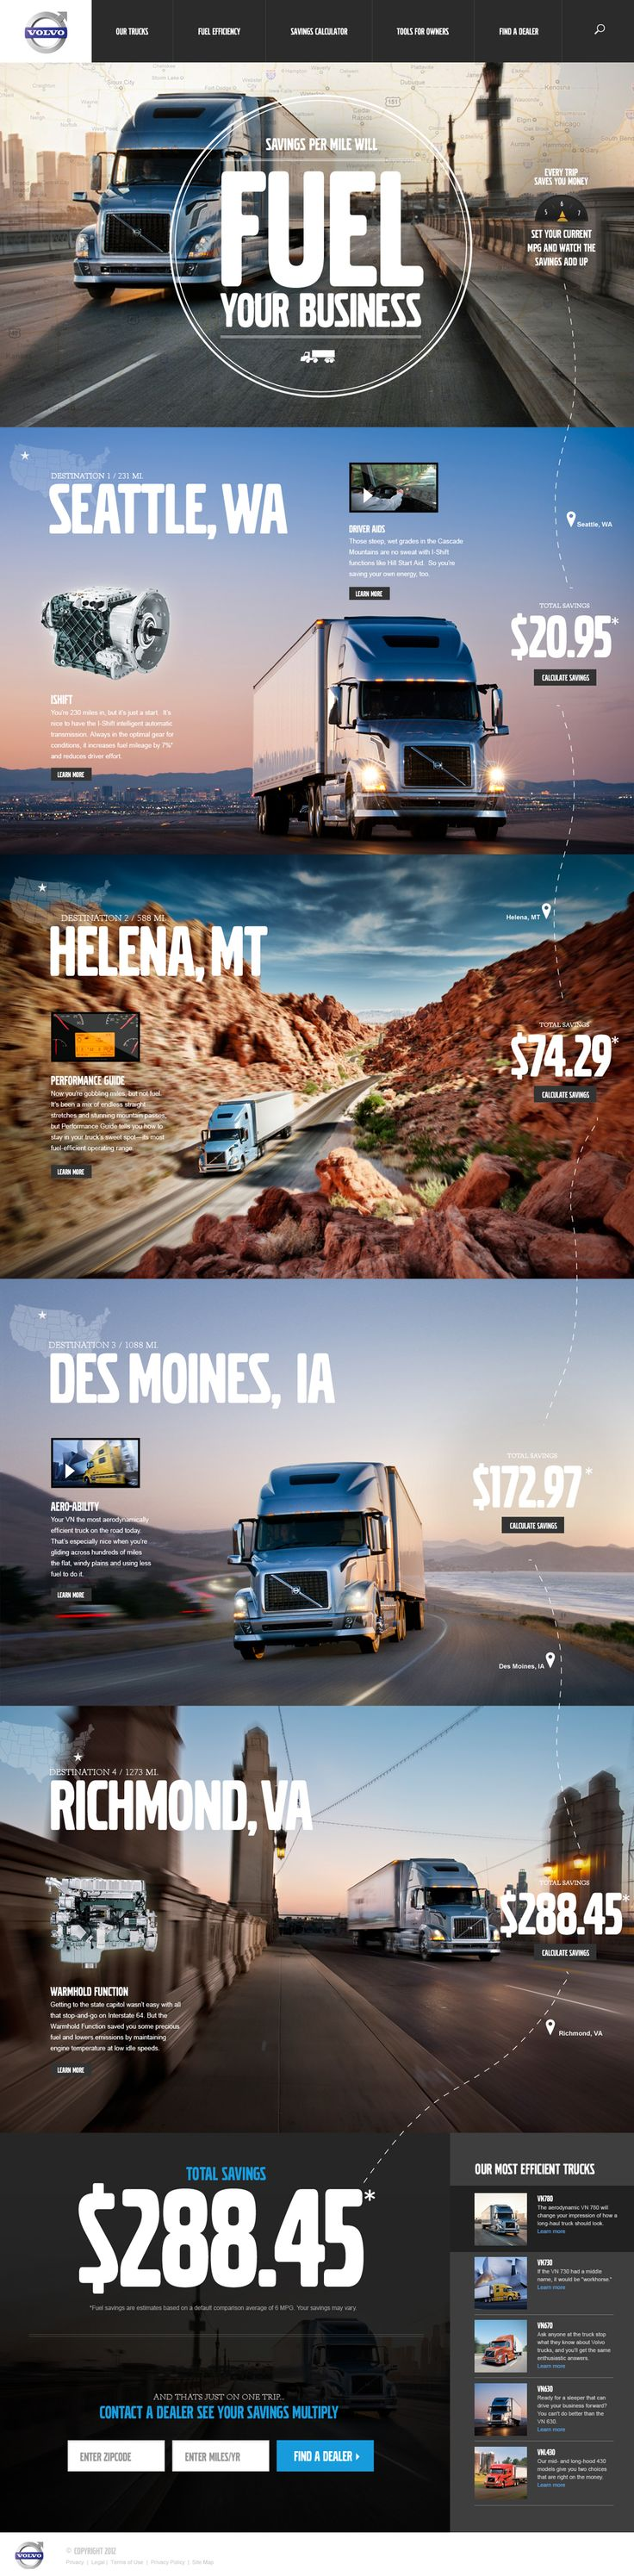 Volvo Trucks website Designed by Megan Man